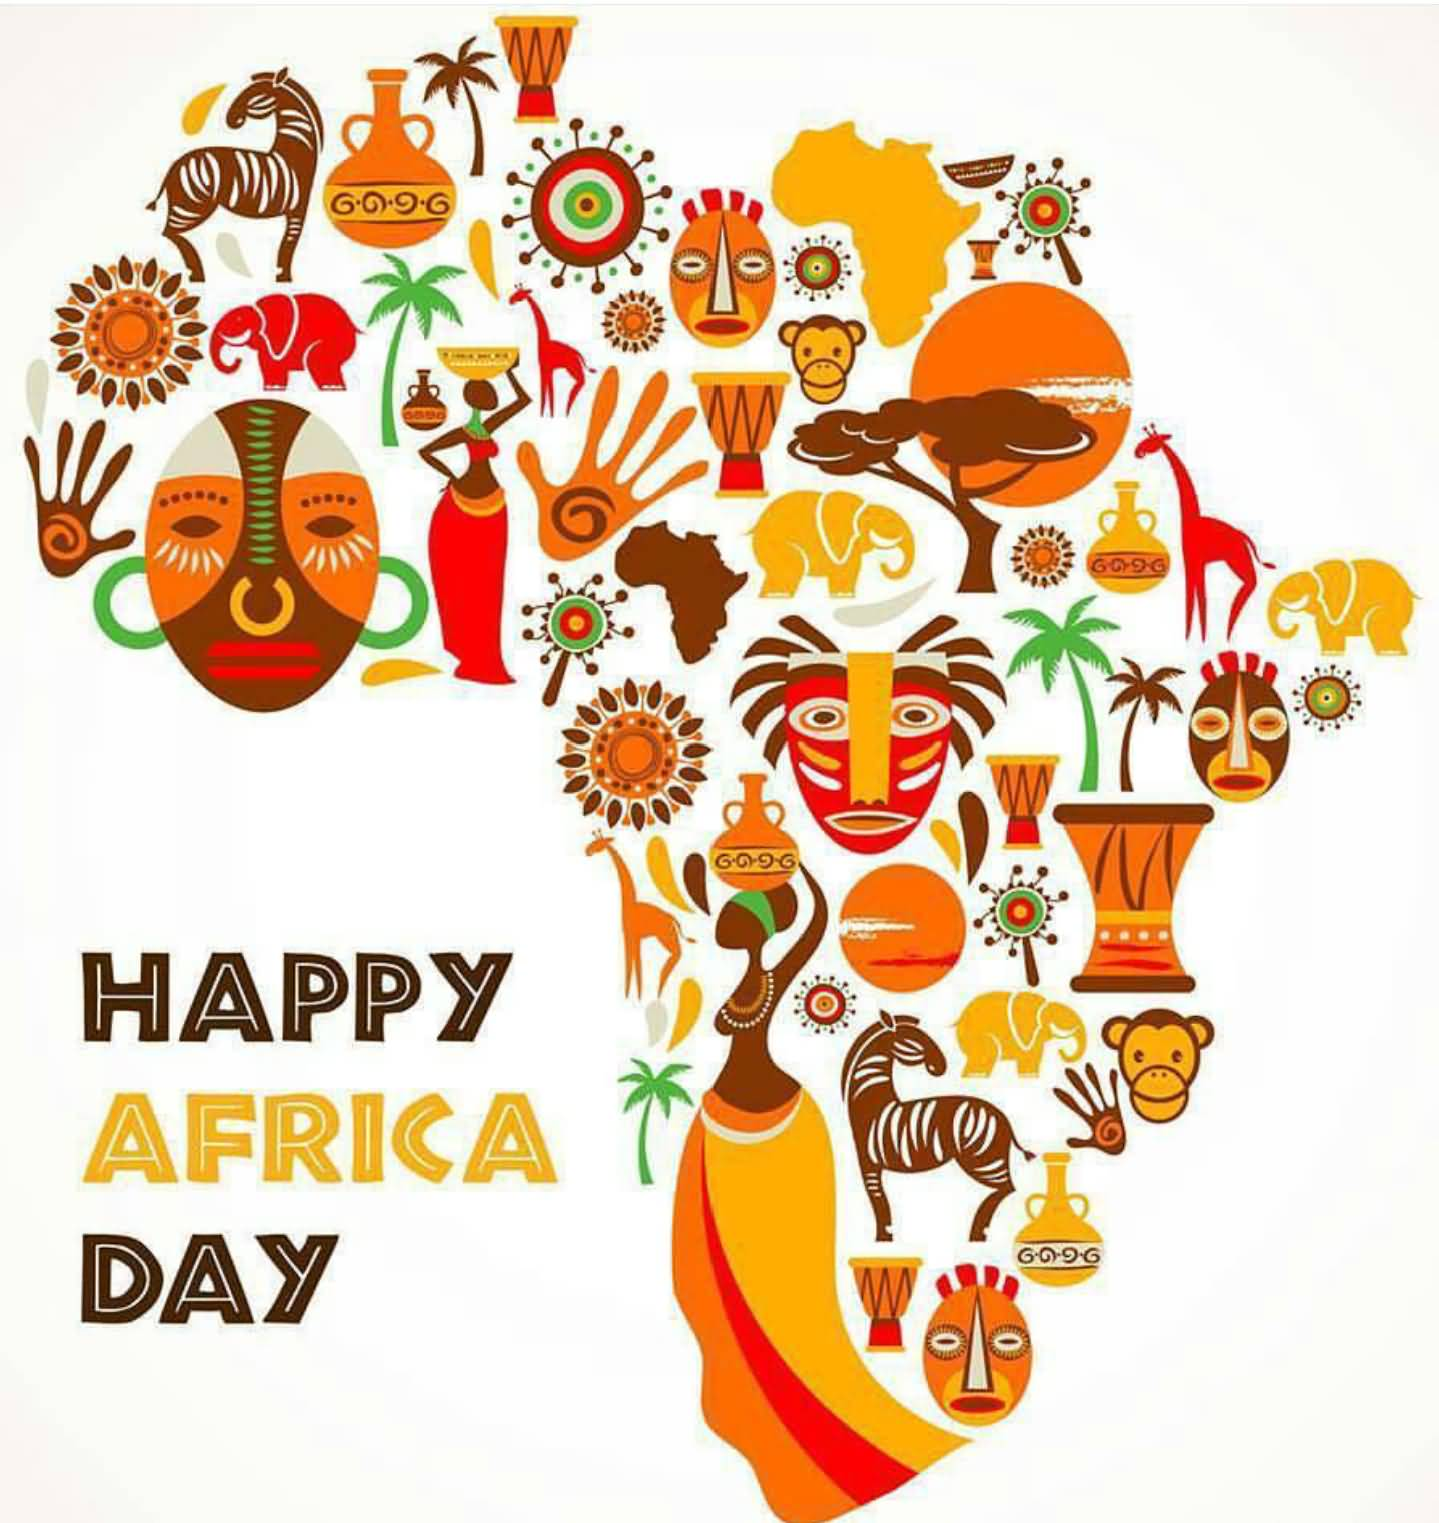 Happy Africa Day African Art